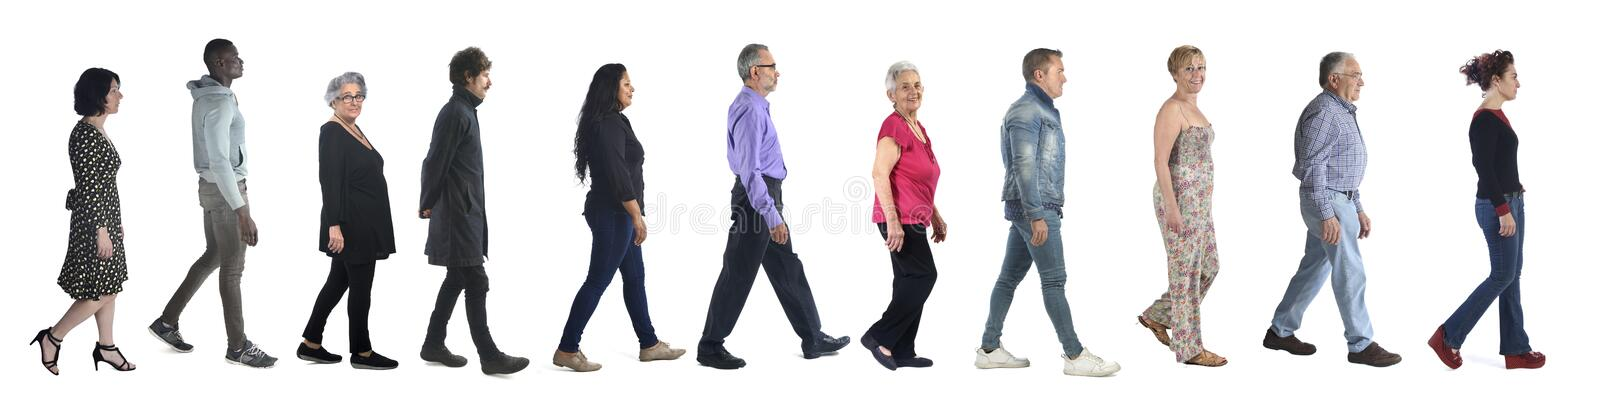 Group of mixed people walking on white royalty free stock image